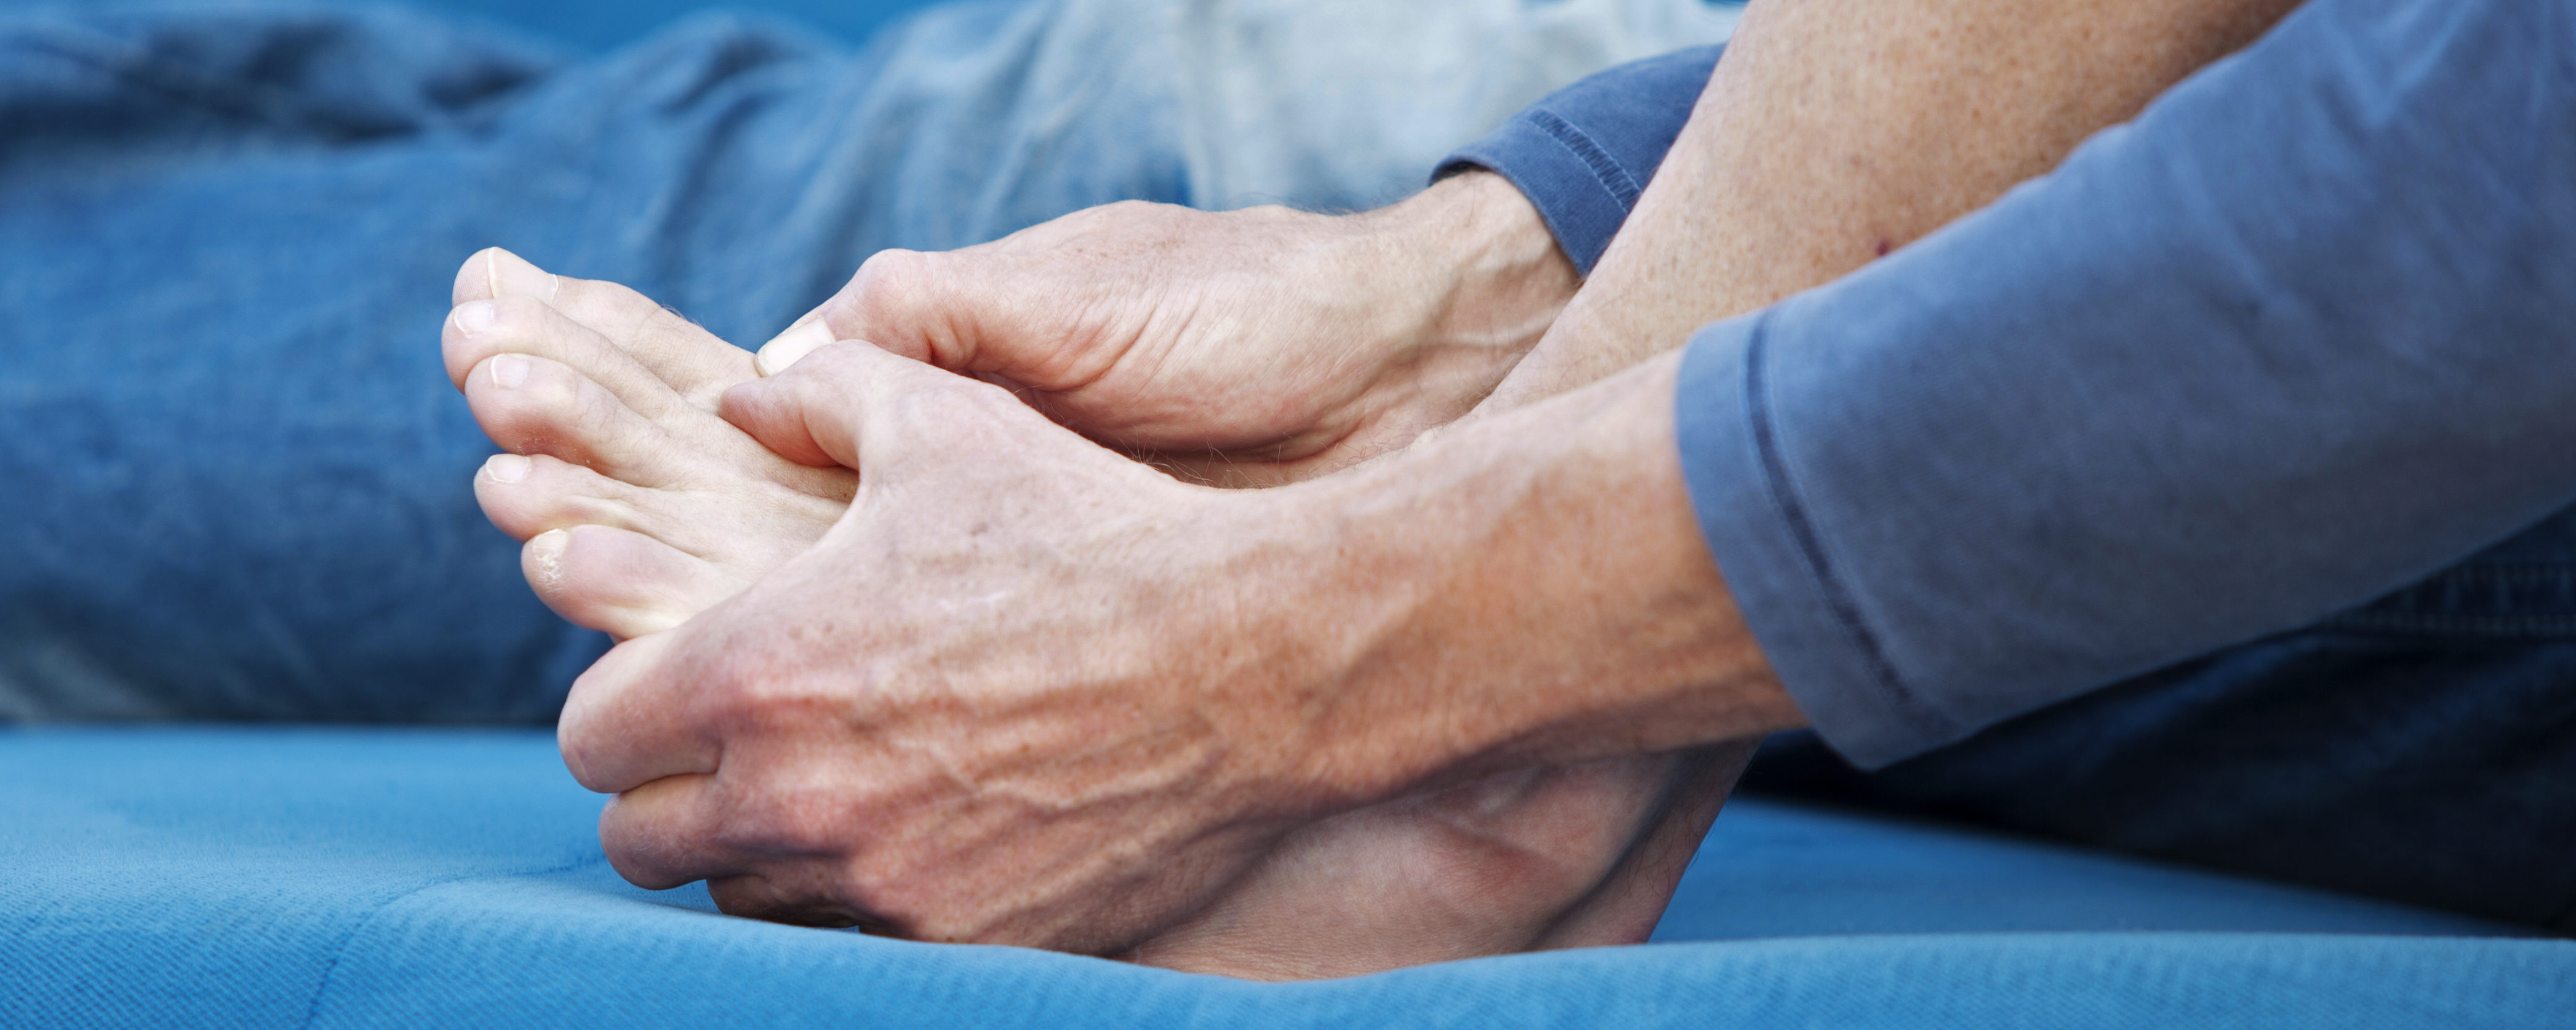 Why do I often feel worse right after starting a new medication? | Gout | Handling the Hard Questions Series